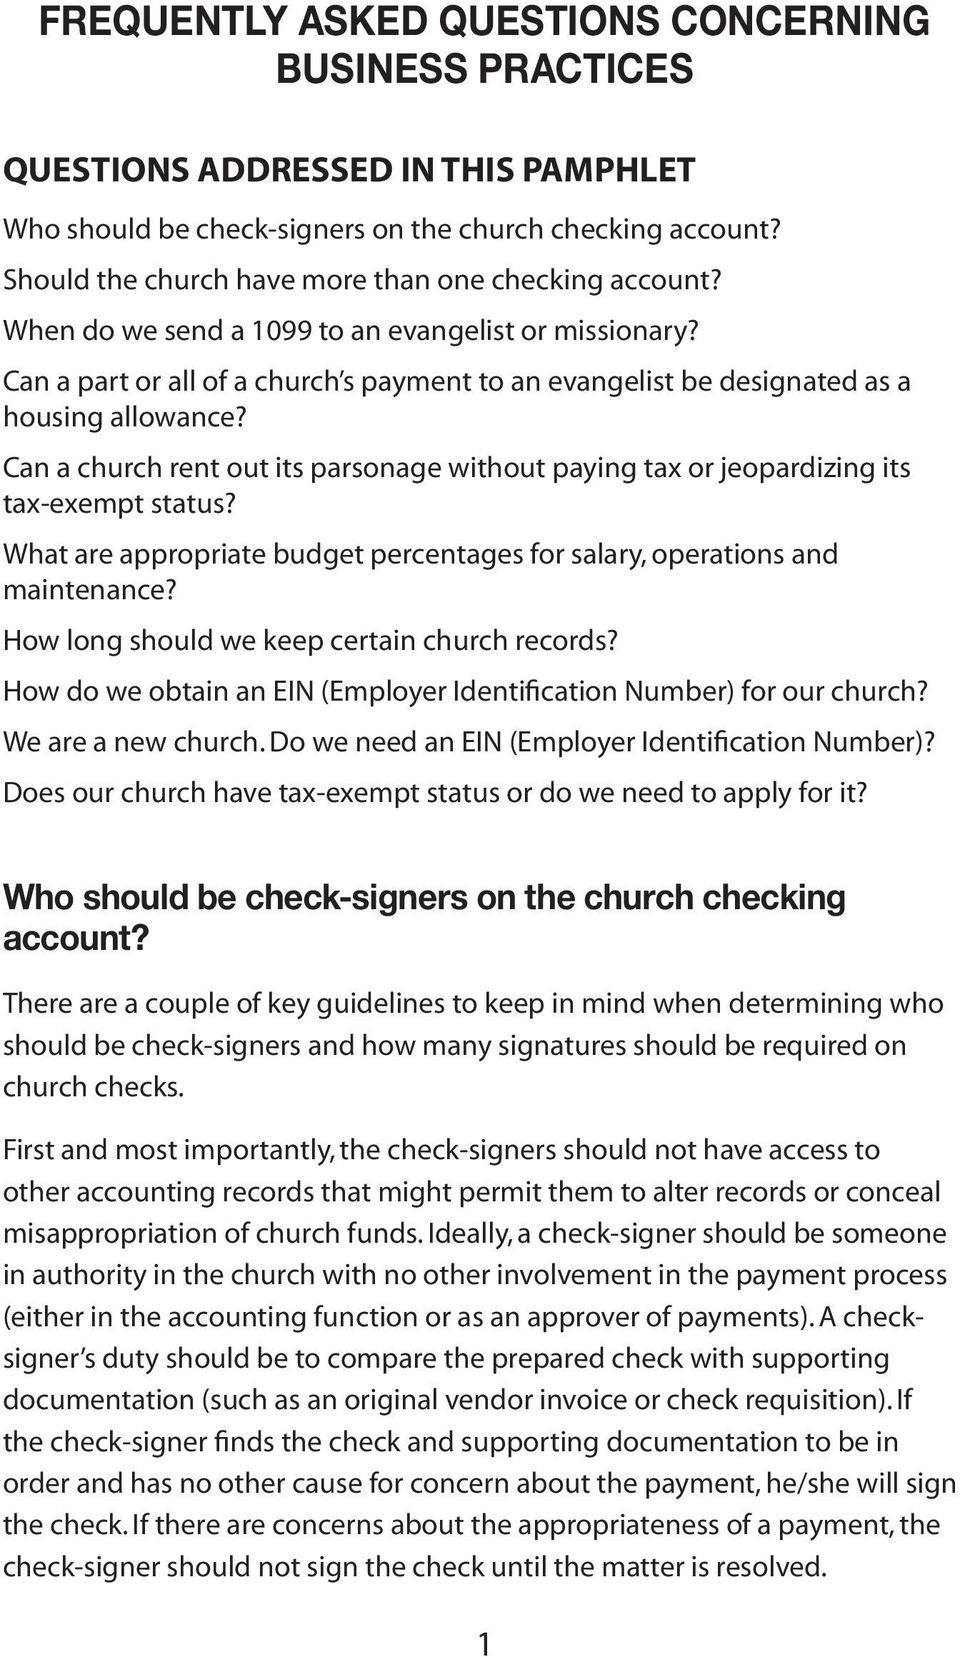 Can a part or all of a church s payment to an evangelist be designated as a housing allowance? Can a church rent out its parsonage without paying tax or jeopardizing its tax-exempt status?